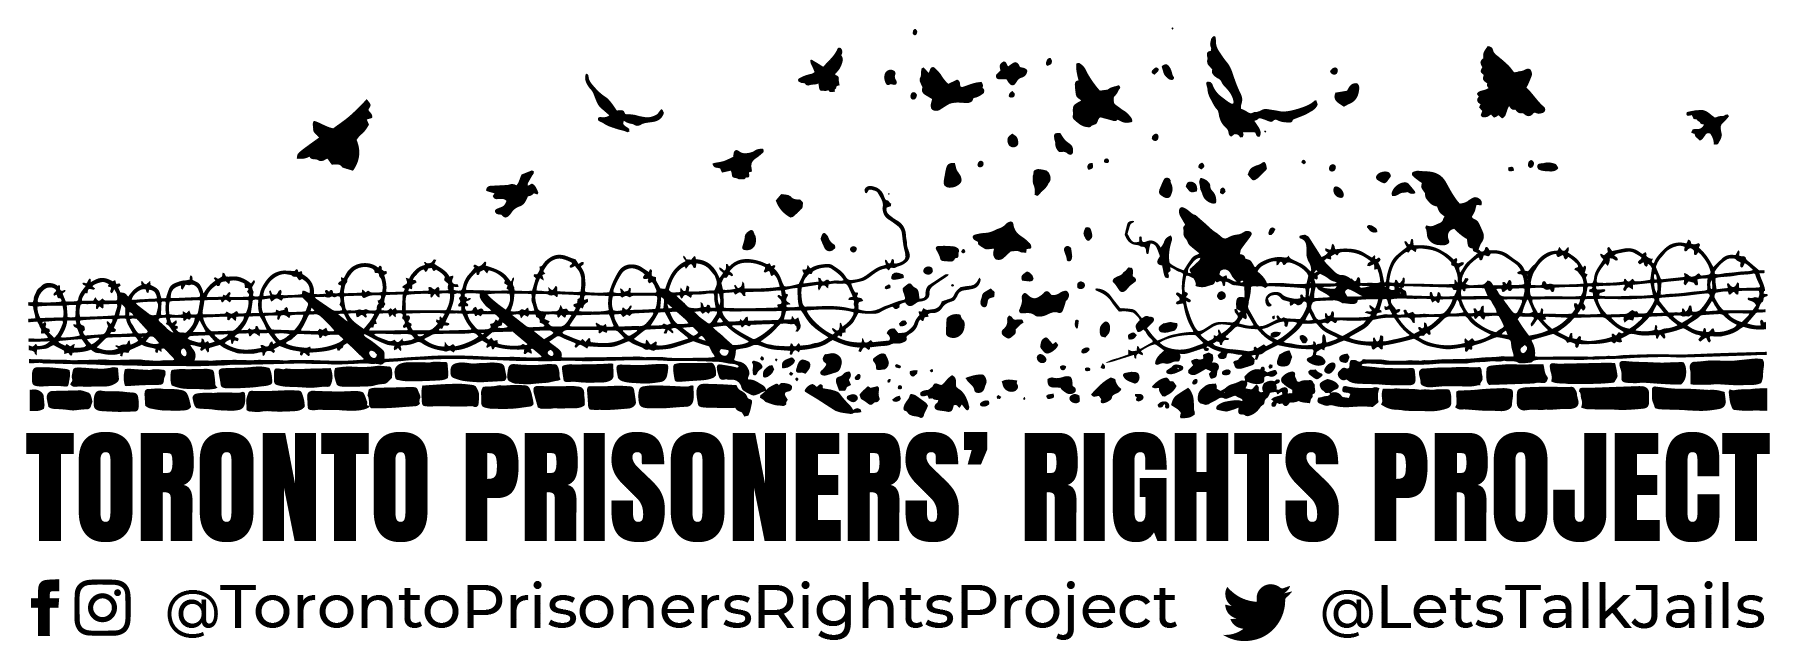 Black and white logo for Toronto Prisoners' Rights Project